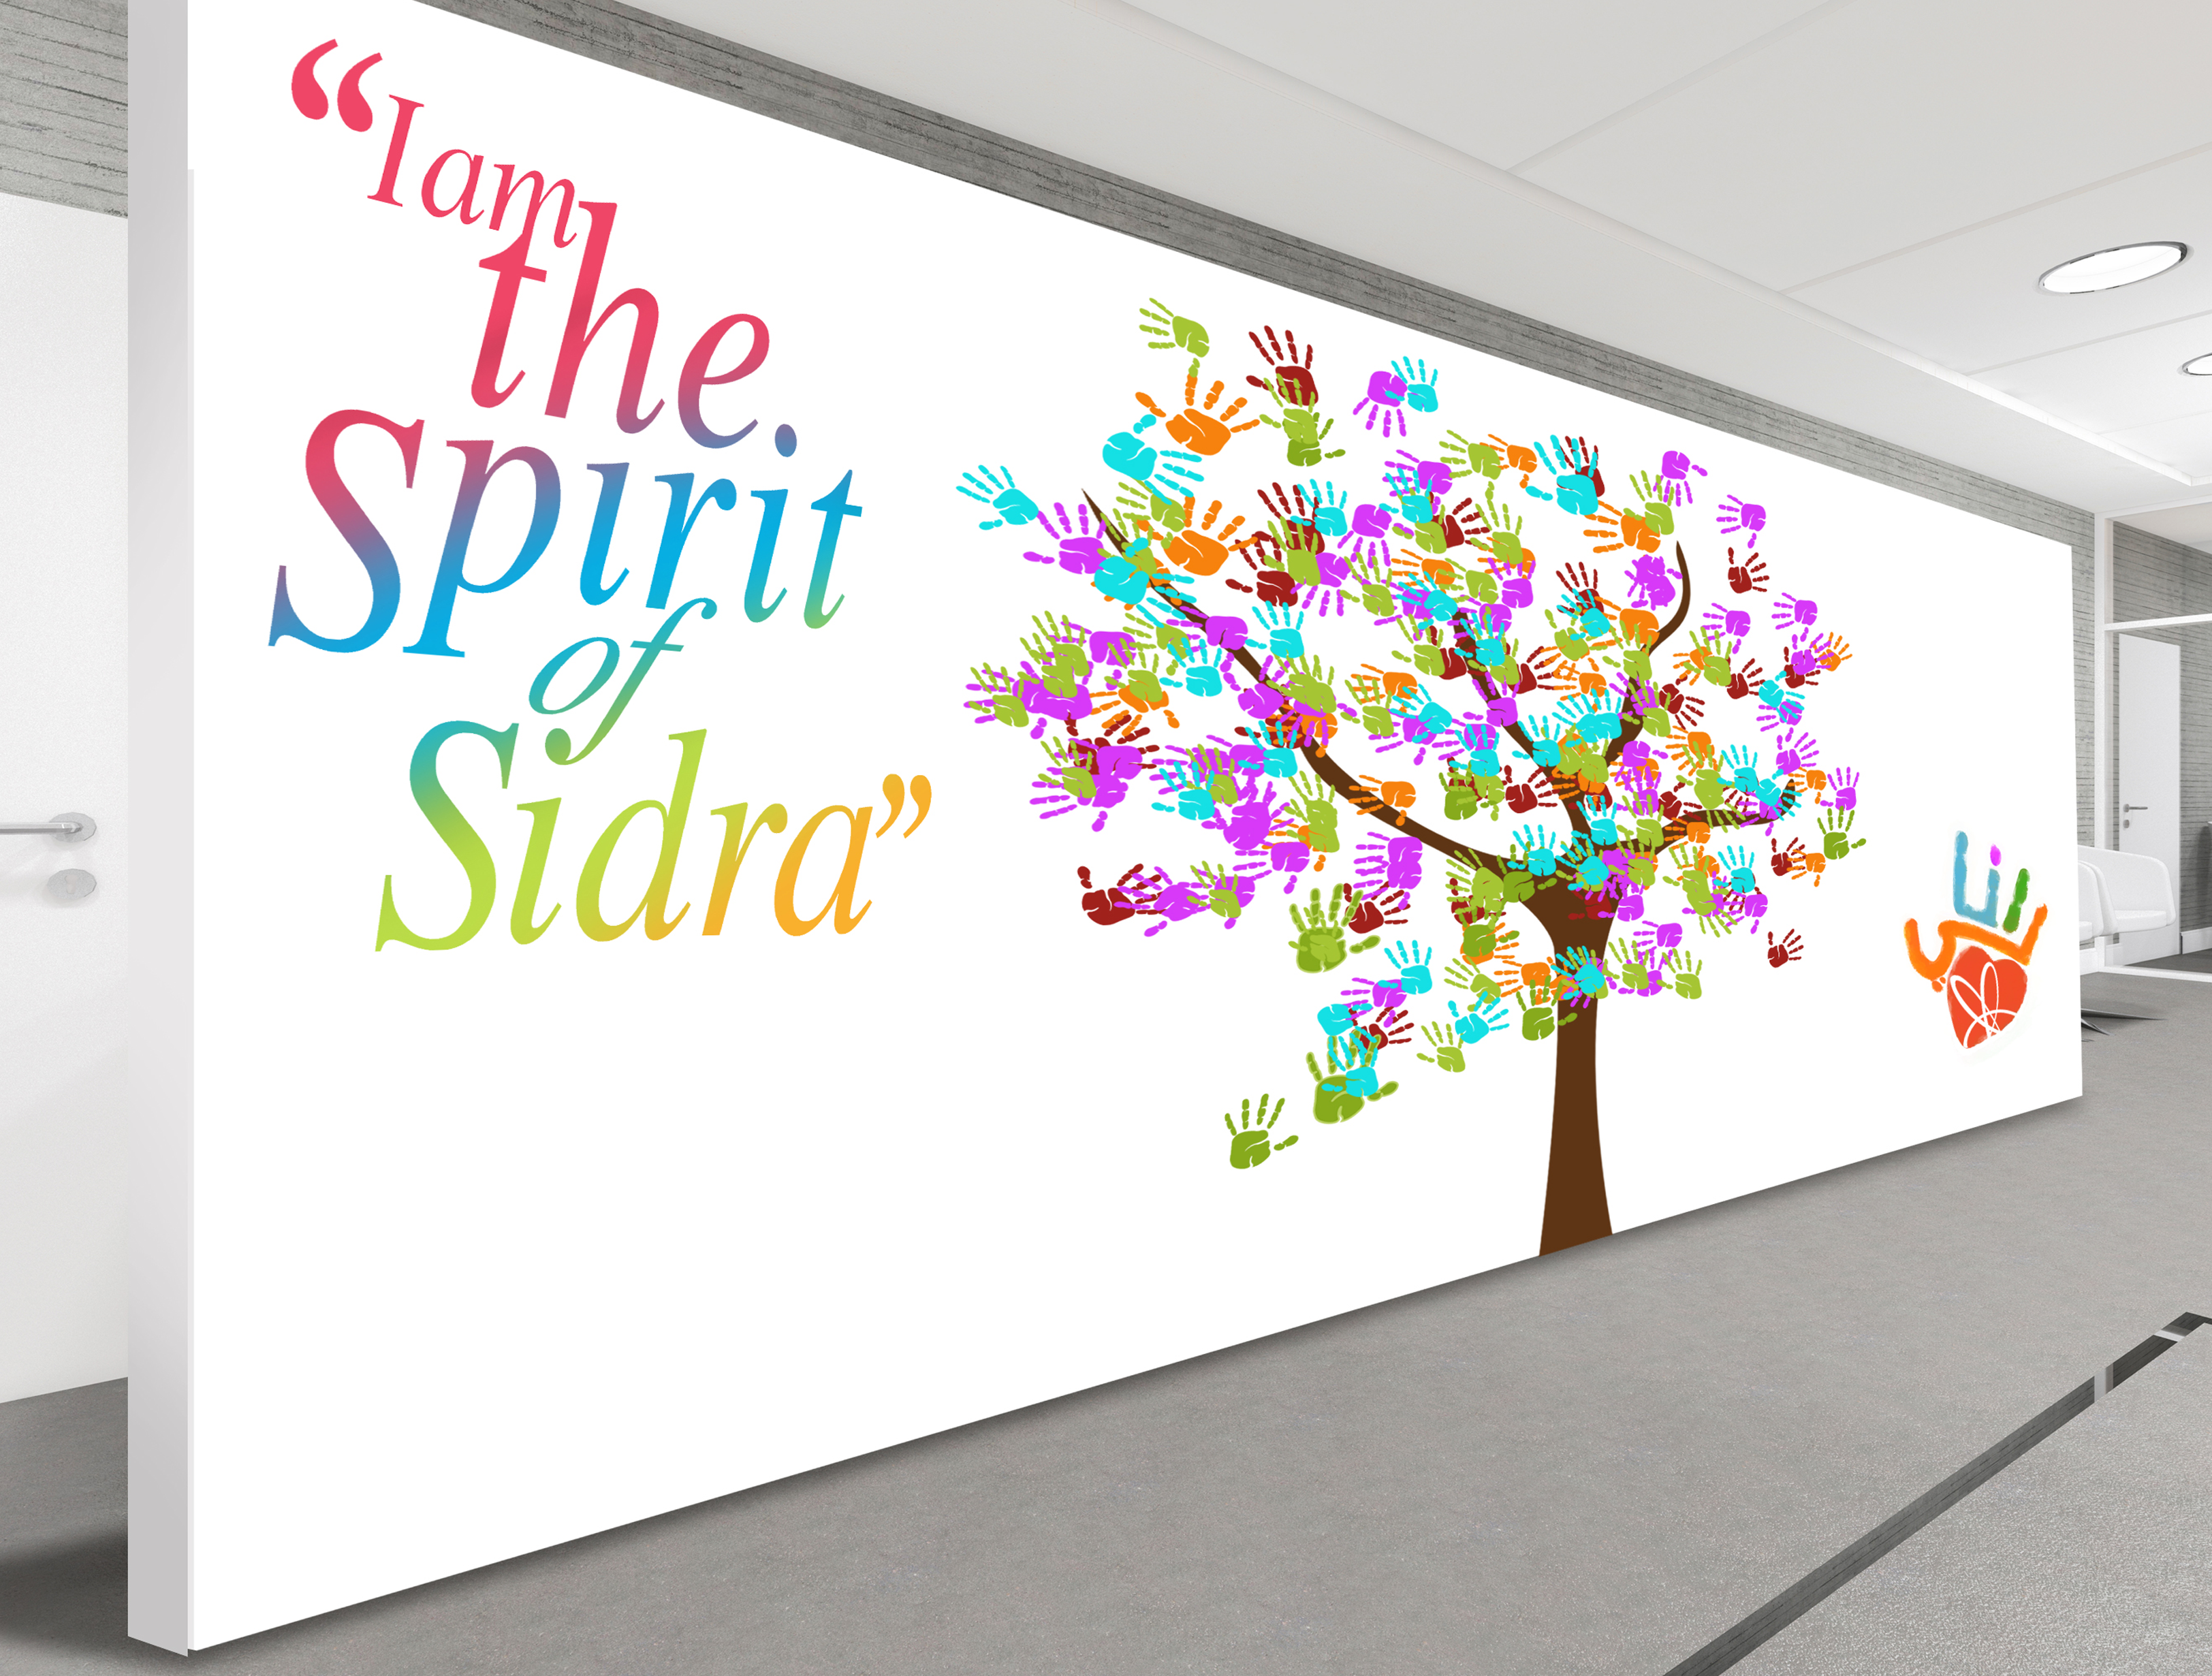 SIDRA VALUES GROW learning tree